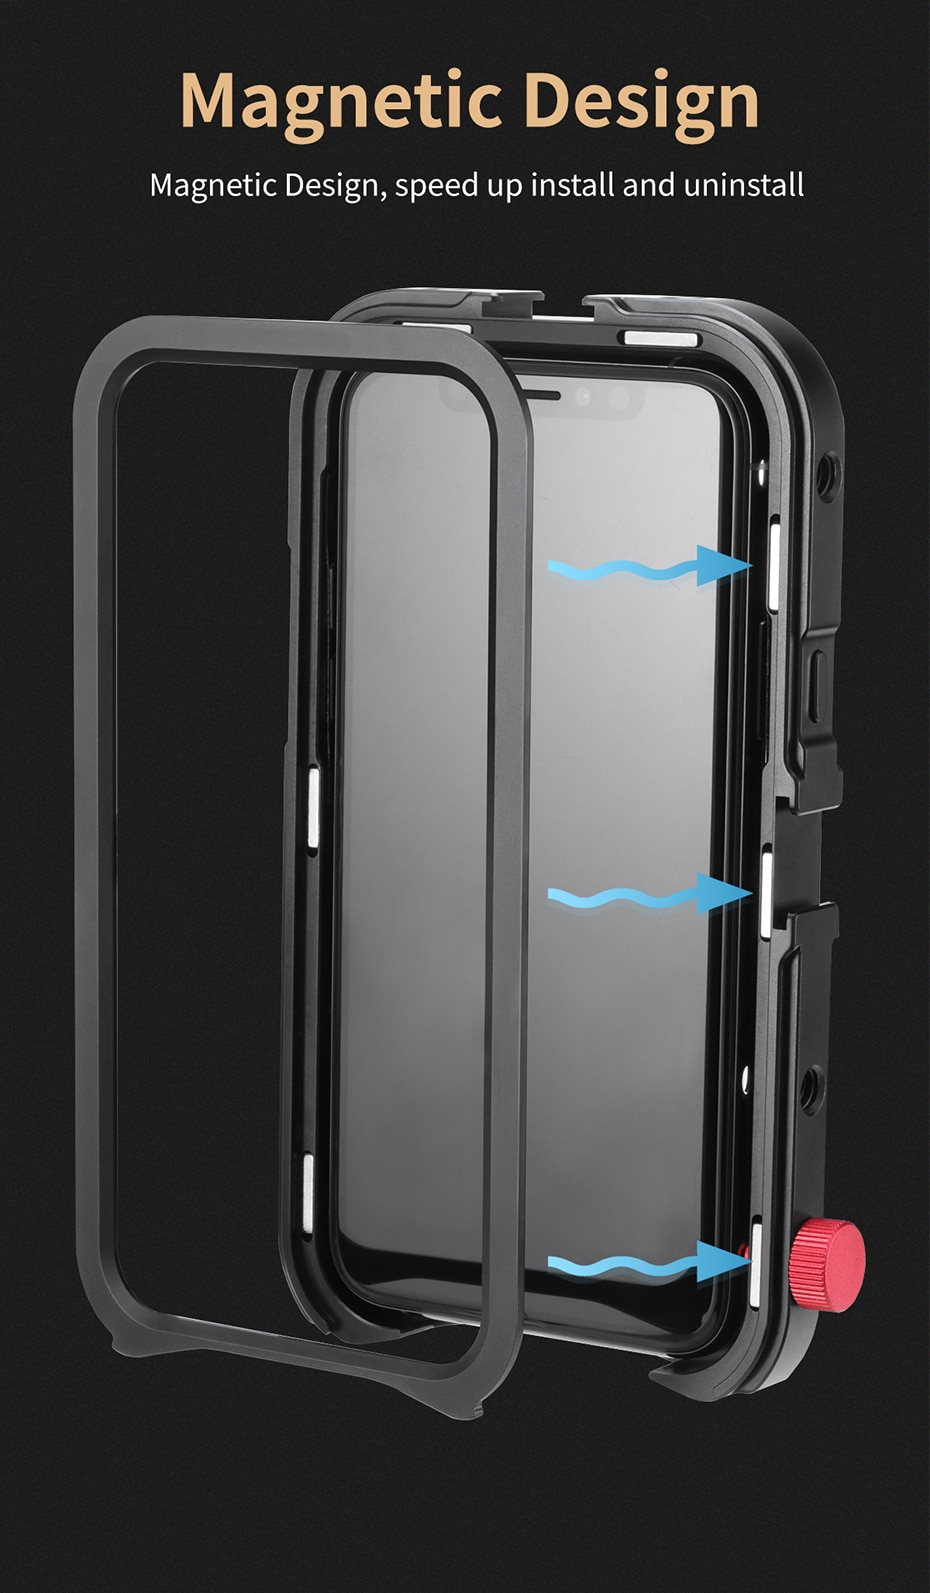 Ulanzi Vlog Metal Case Cage for iPhone 11 Video Shooting Record Vlogging Case with 17MM Thread 1/4 Screw